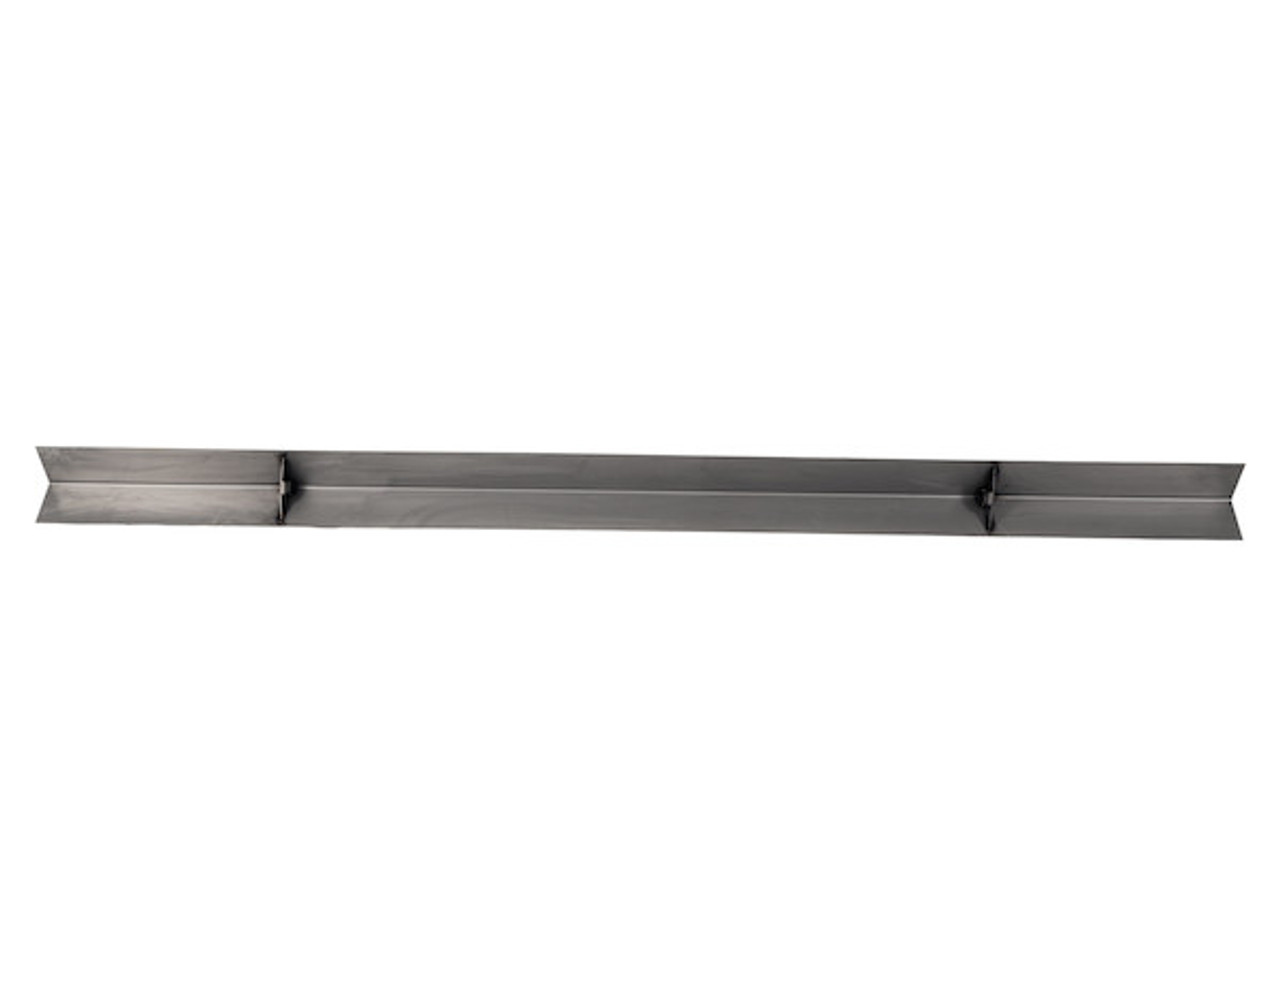 BUYERS 1499500SS REPLACEMENT 8 FOOT STAINLESS STEEL INVERTED V KIT WITH HARDWARE FOR SALTDOGG 1400400 AND 1400450 SPREADERS 3